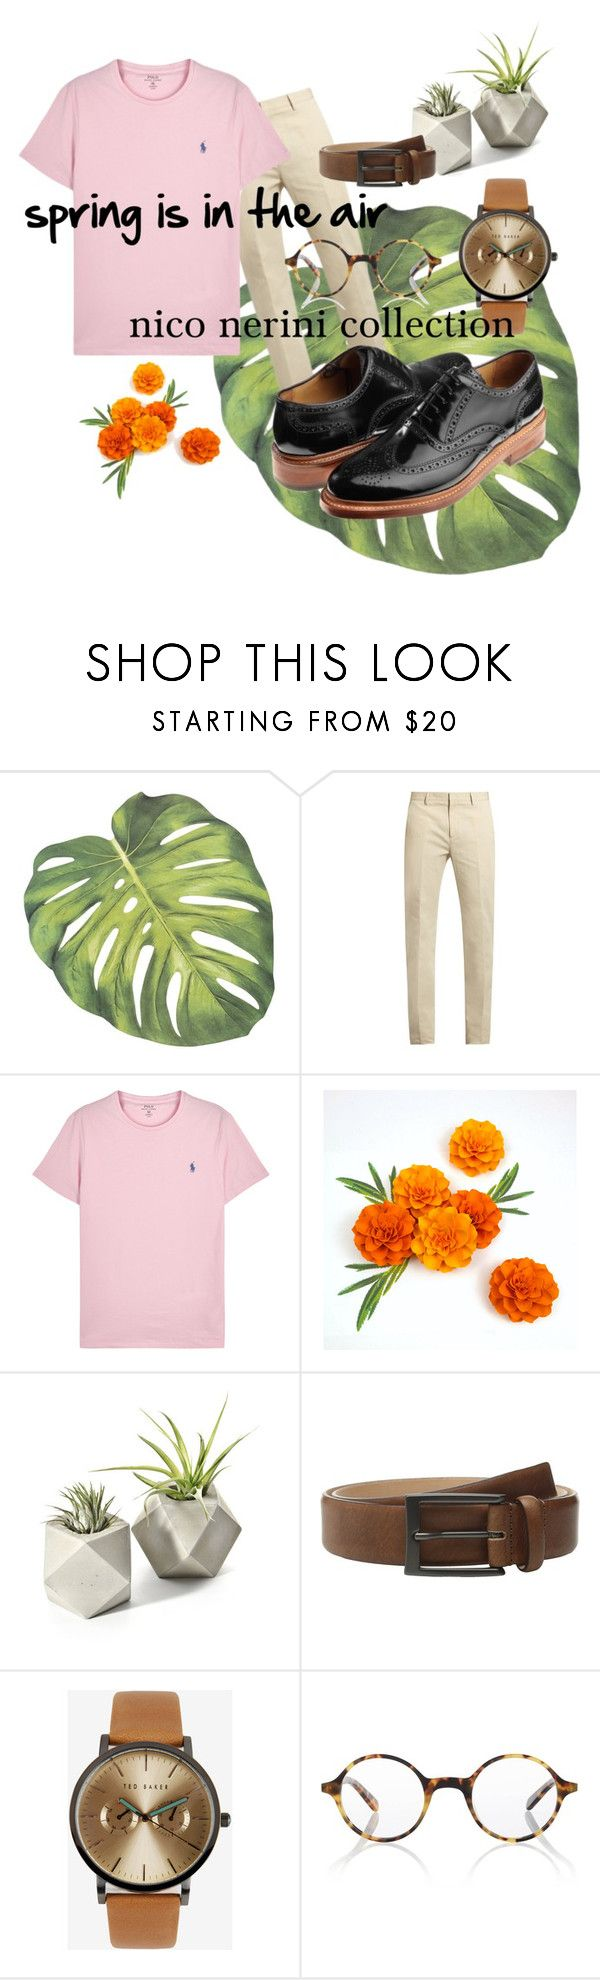 spring is in the air by nico-nerini on Polyvore featuring Polo Ralph Lauren, Calvin Klein Collection, Ted Baker, Finlay & Co., Trafalgar, men's fashion and menswear